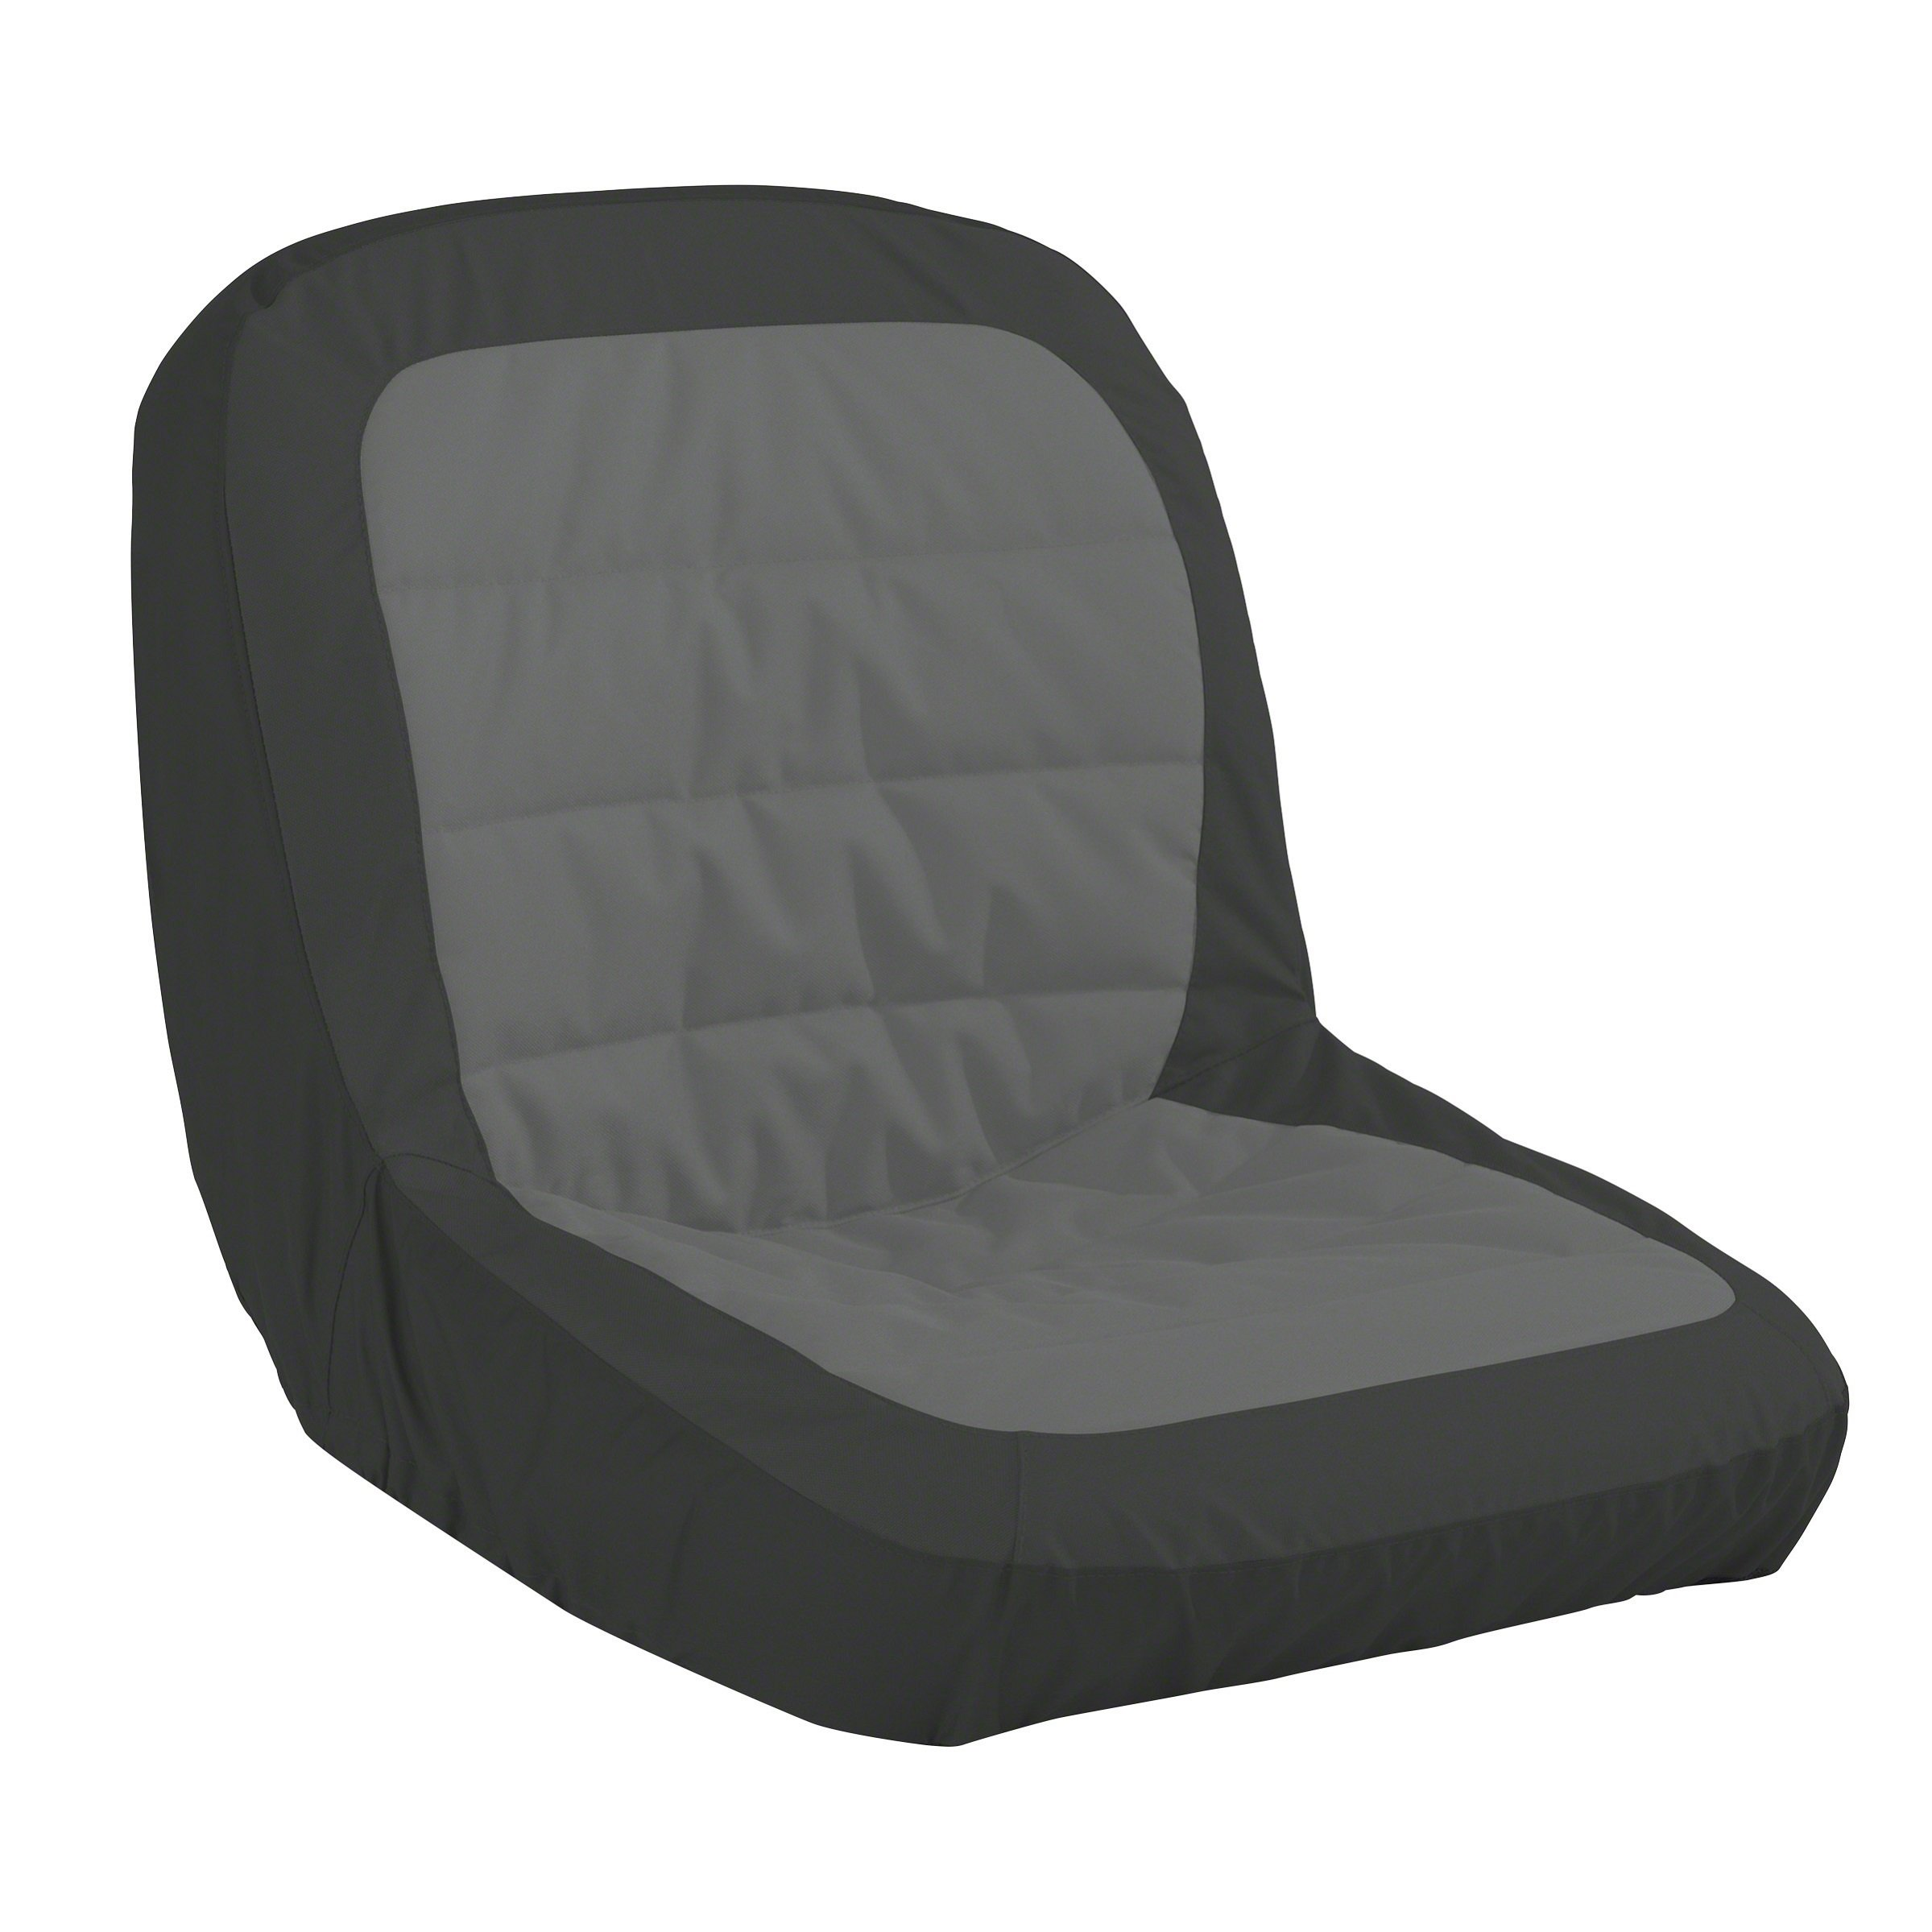 Classic Accessories Lawn Tractor Contoured Seat Cover, Large